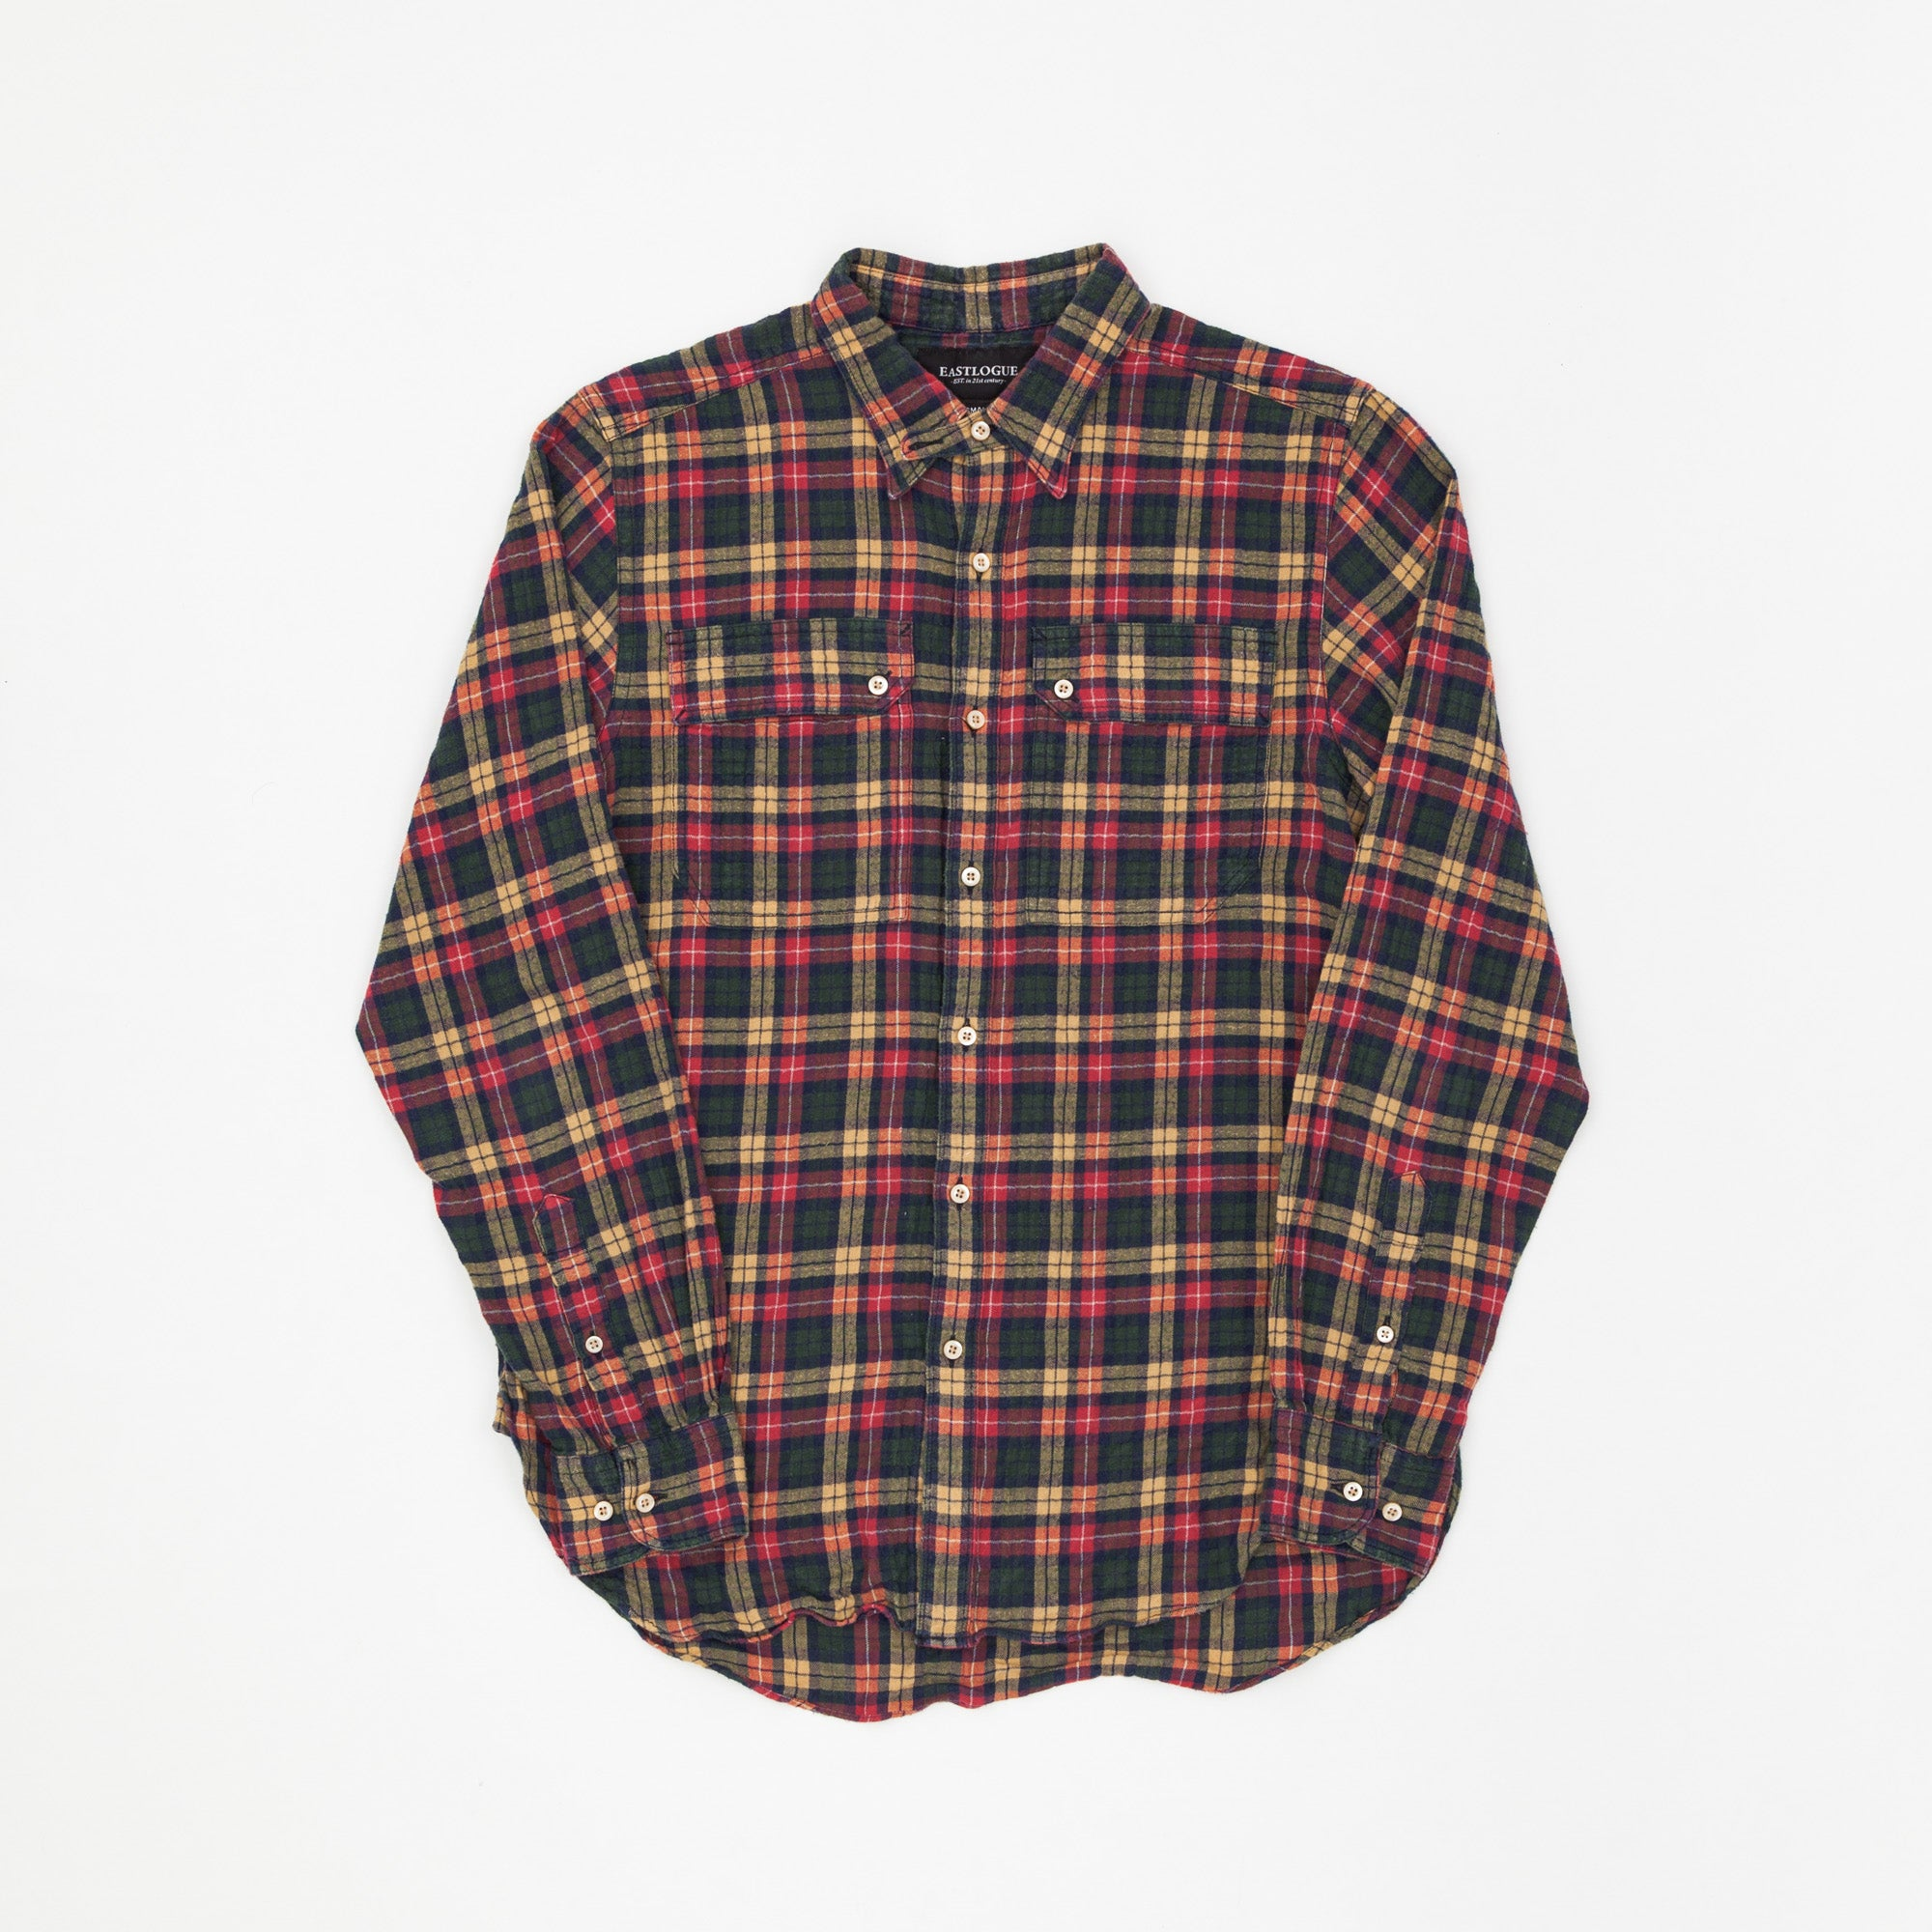 Eastlogue Plaid Work Shirt